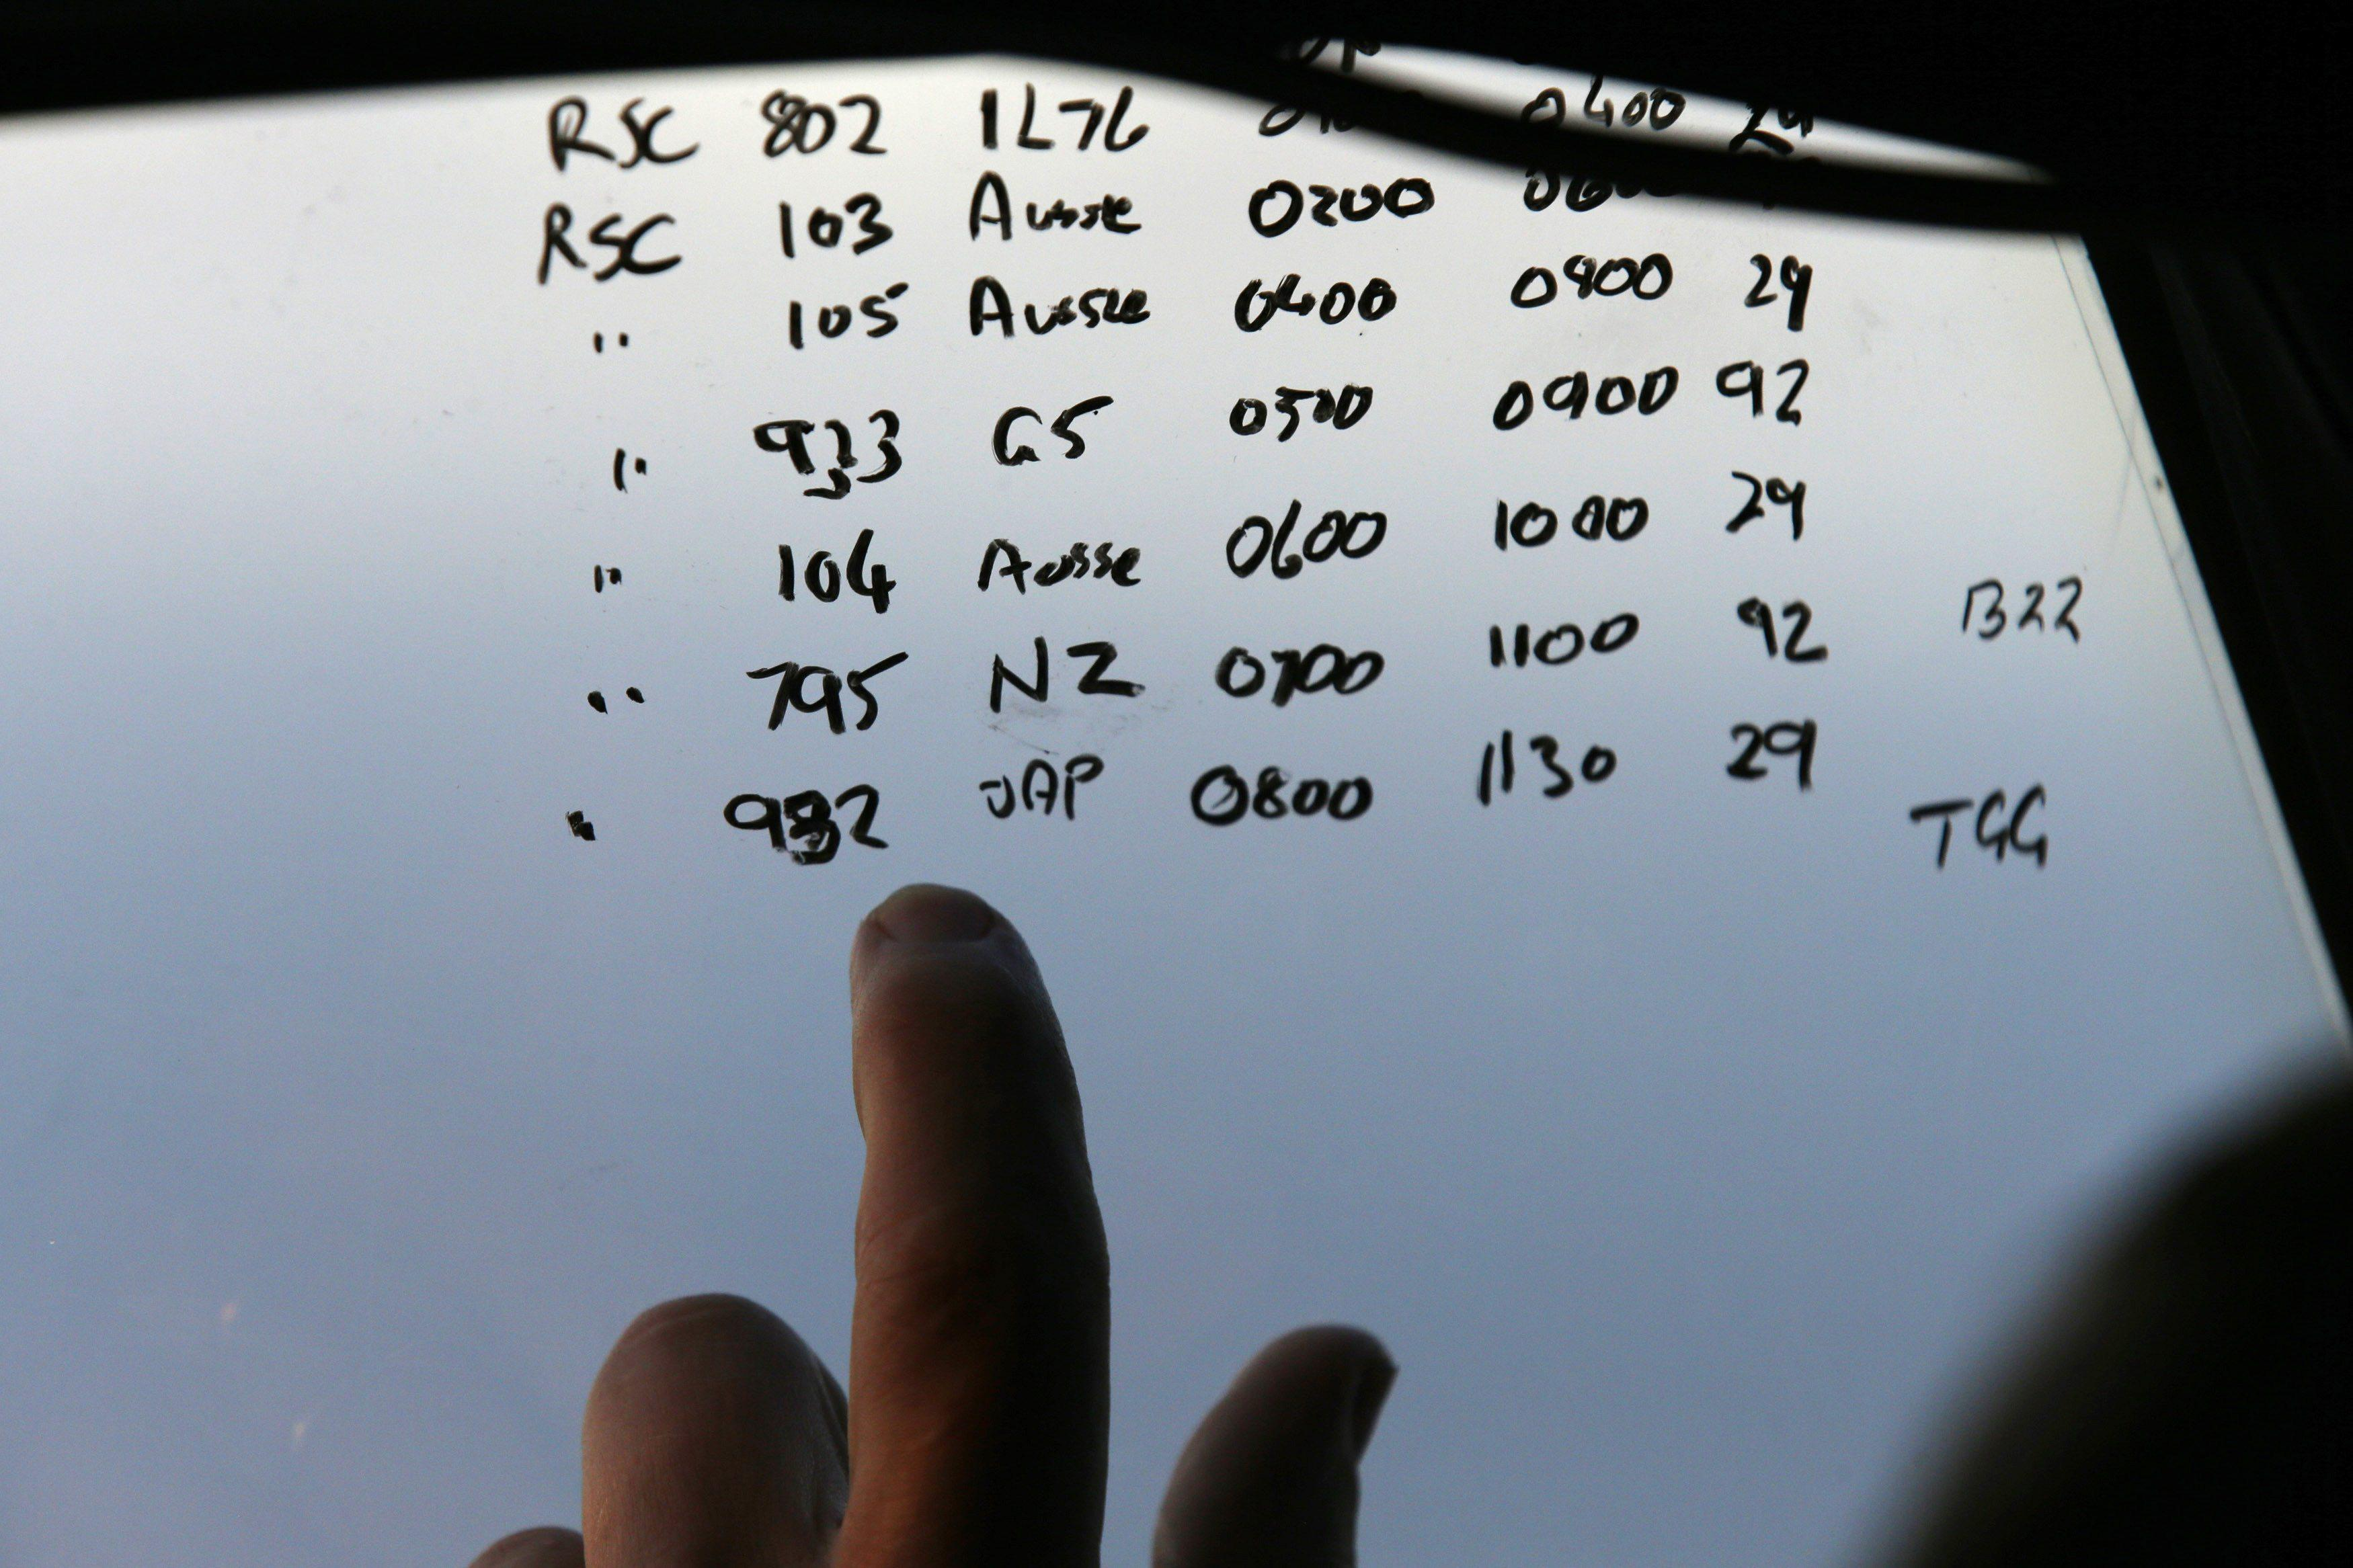 MH370 search scribbles March 29